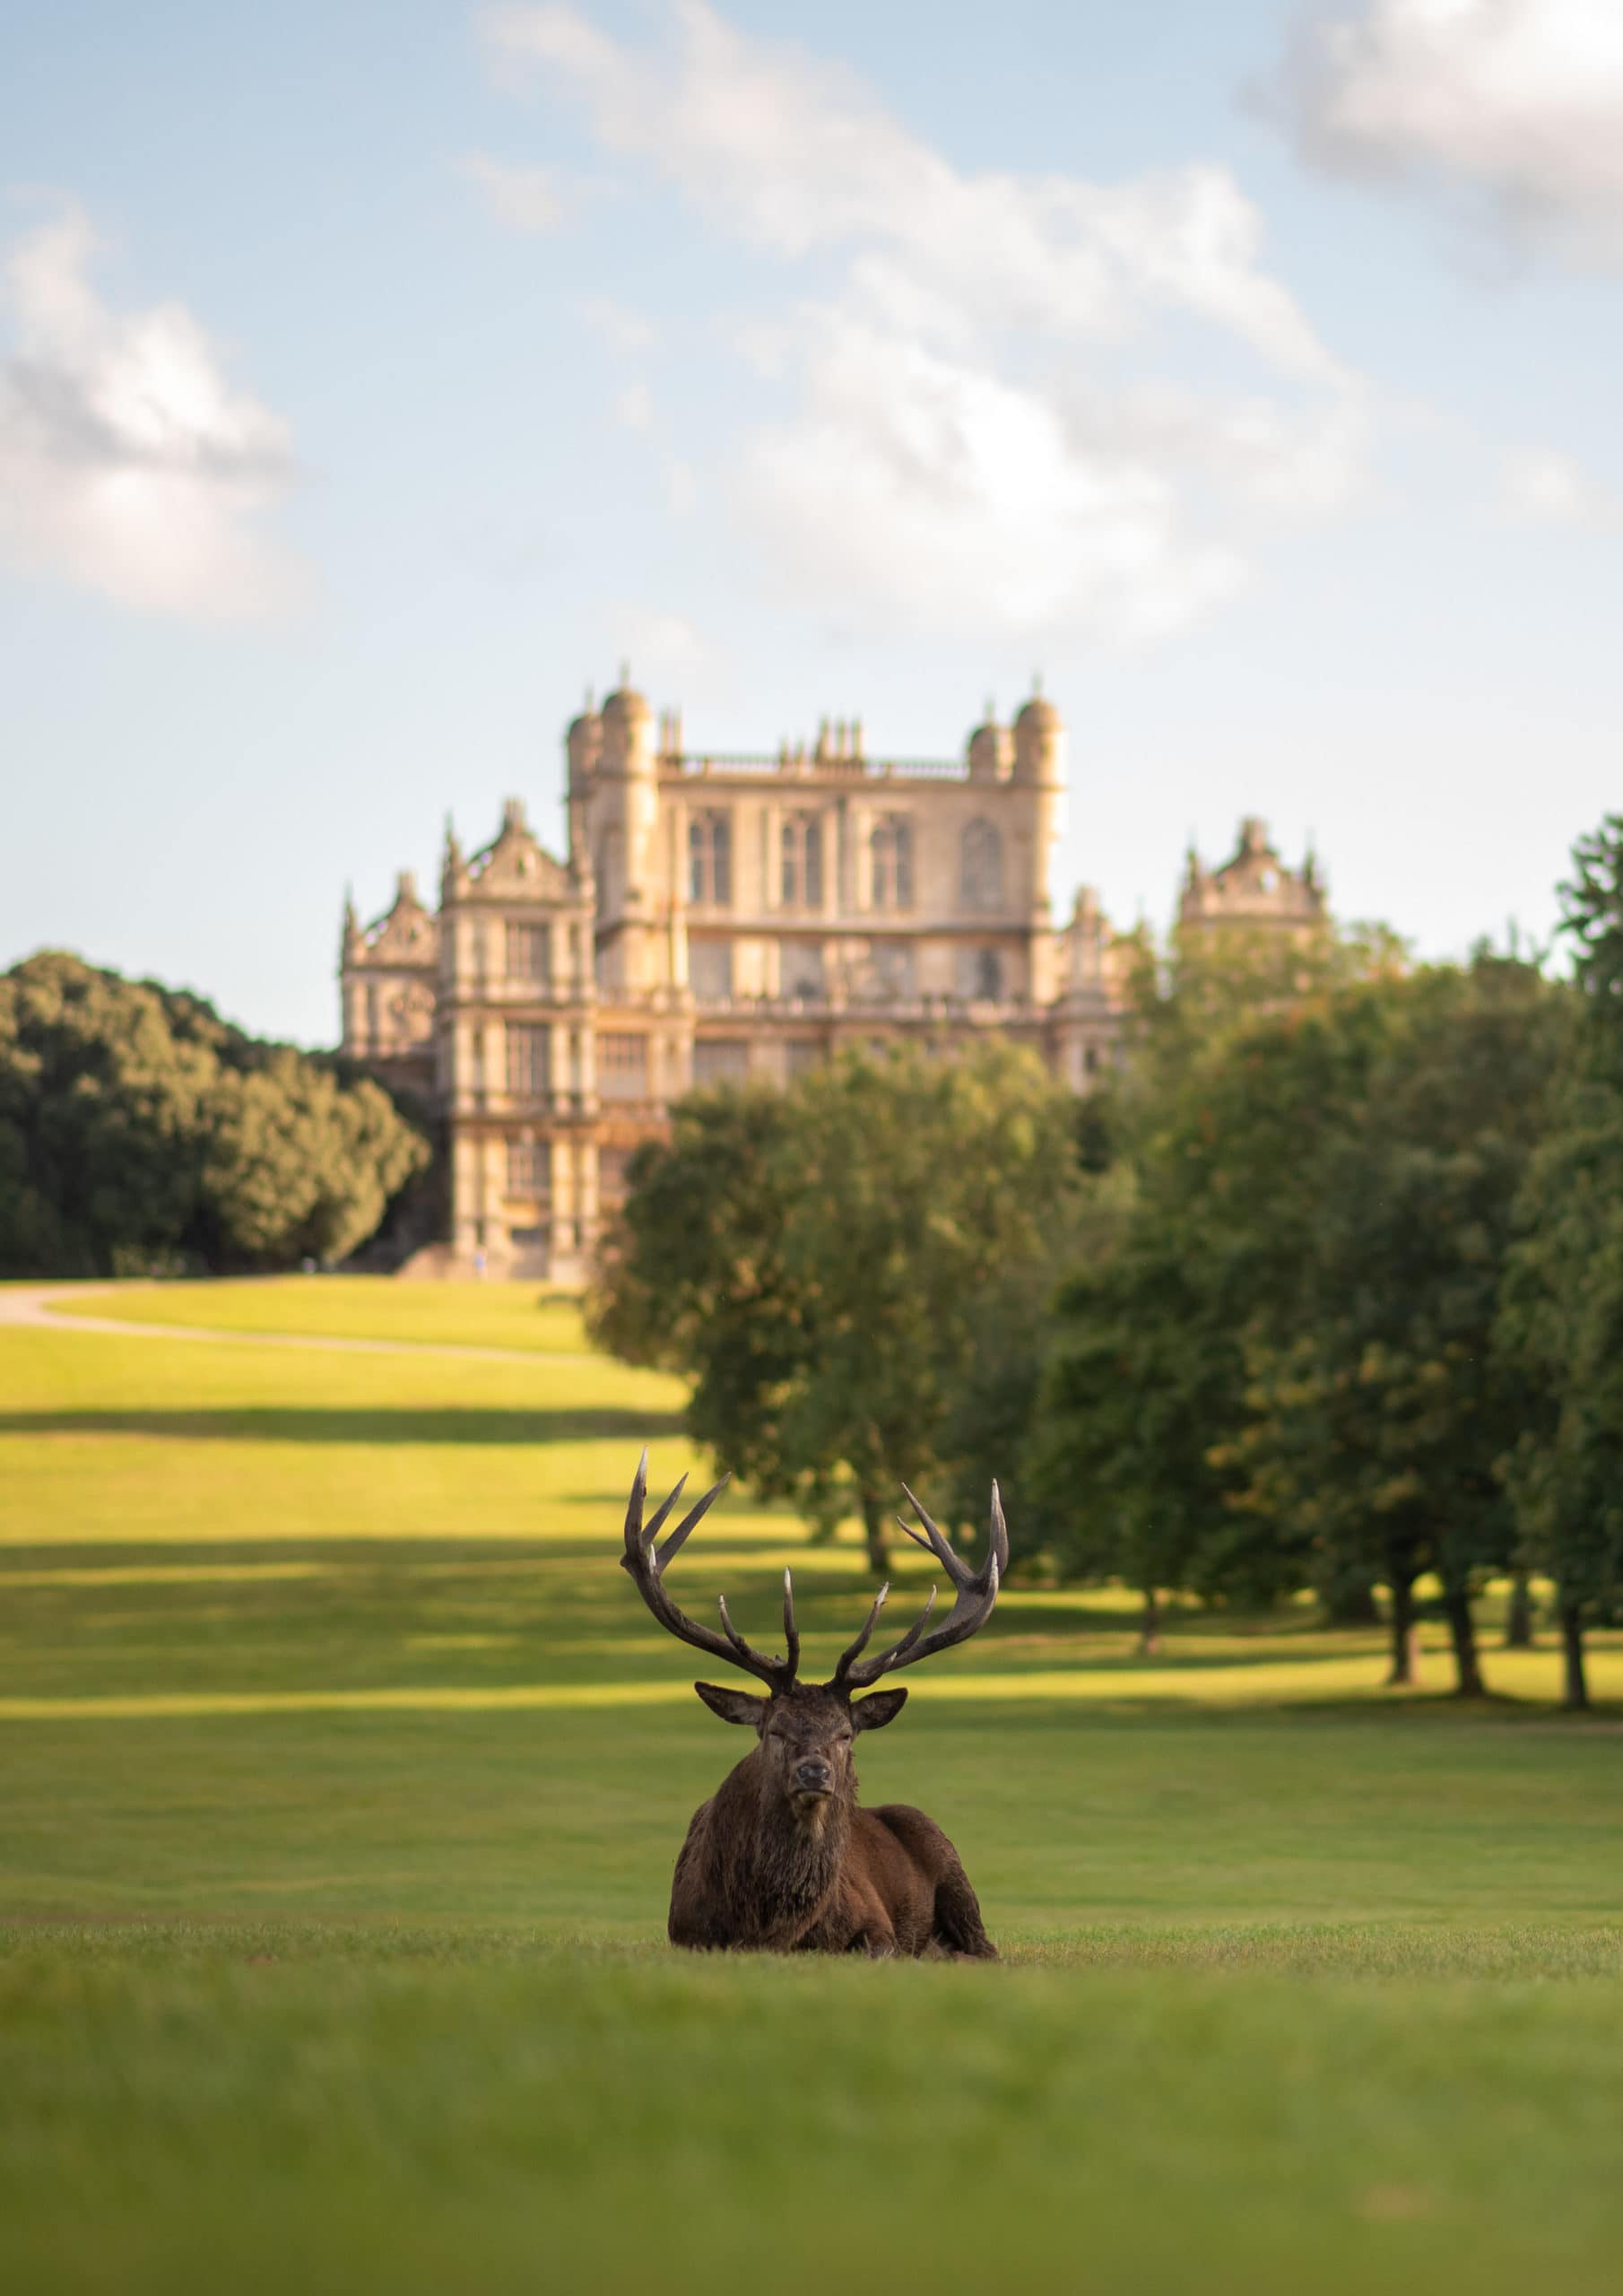 A deer enjoyin the afternoon sunshine outside Wollaton Hall, Nottingham